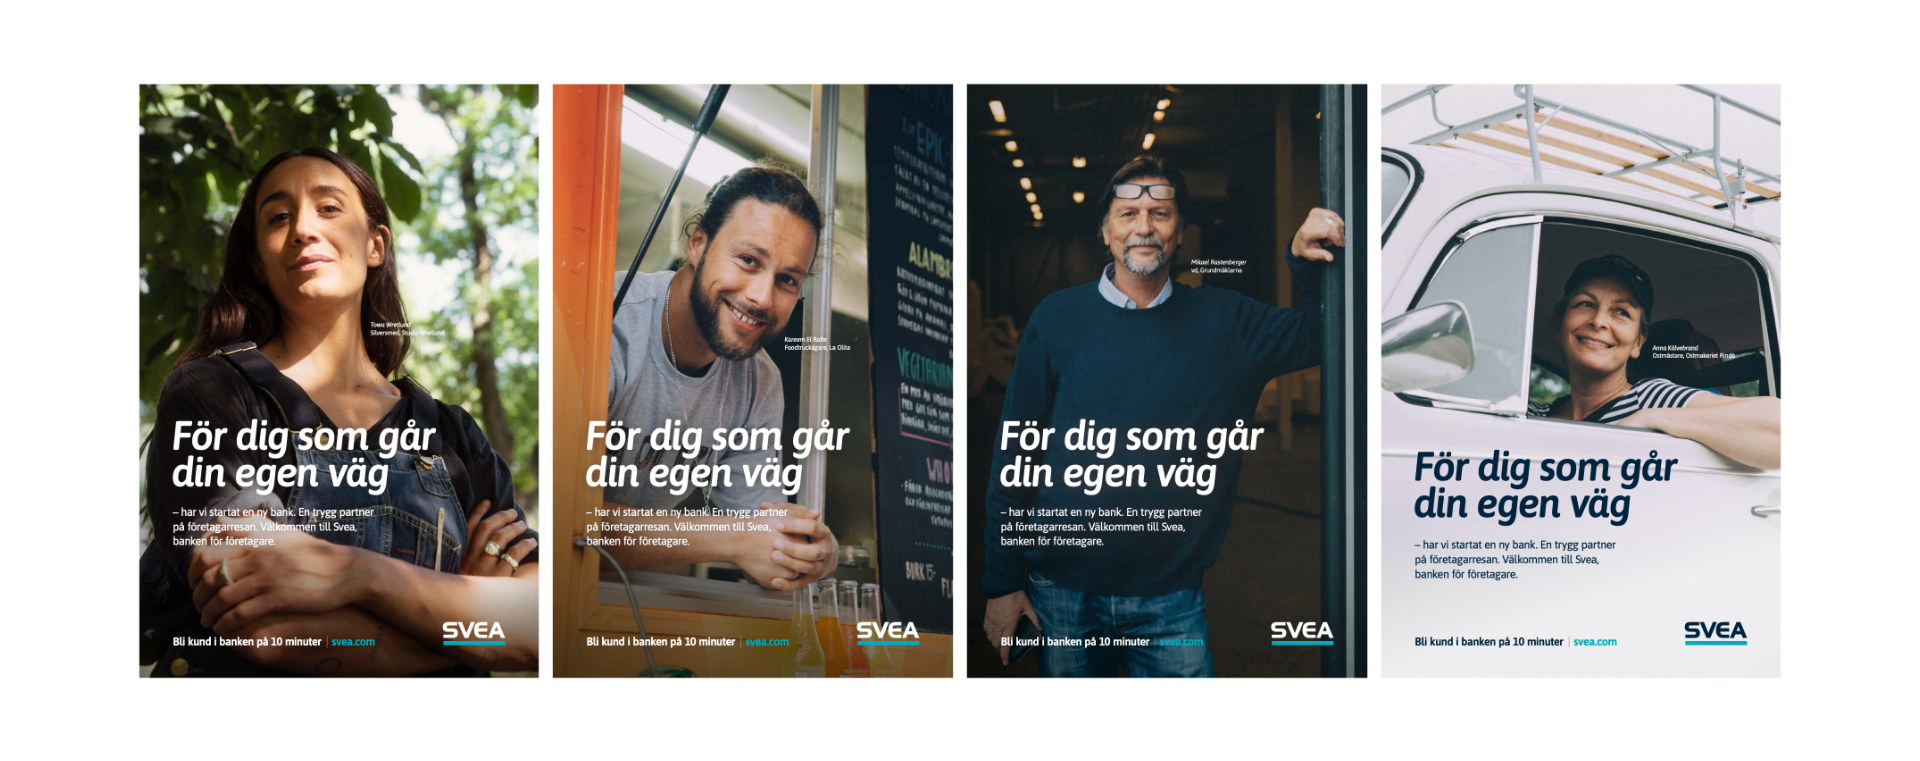 Advertising campaign for Svea Bank